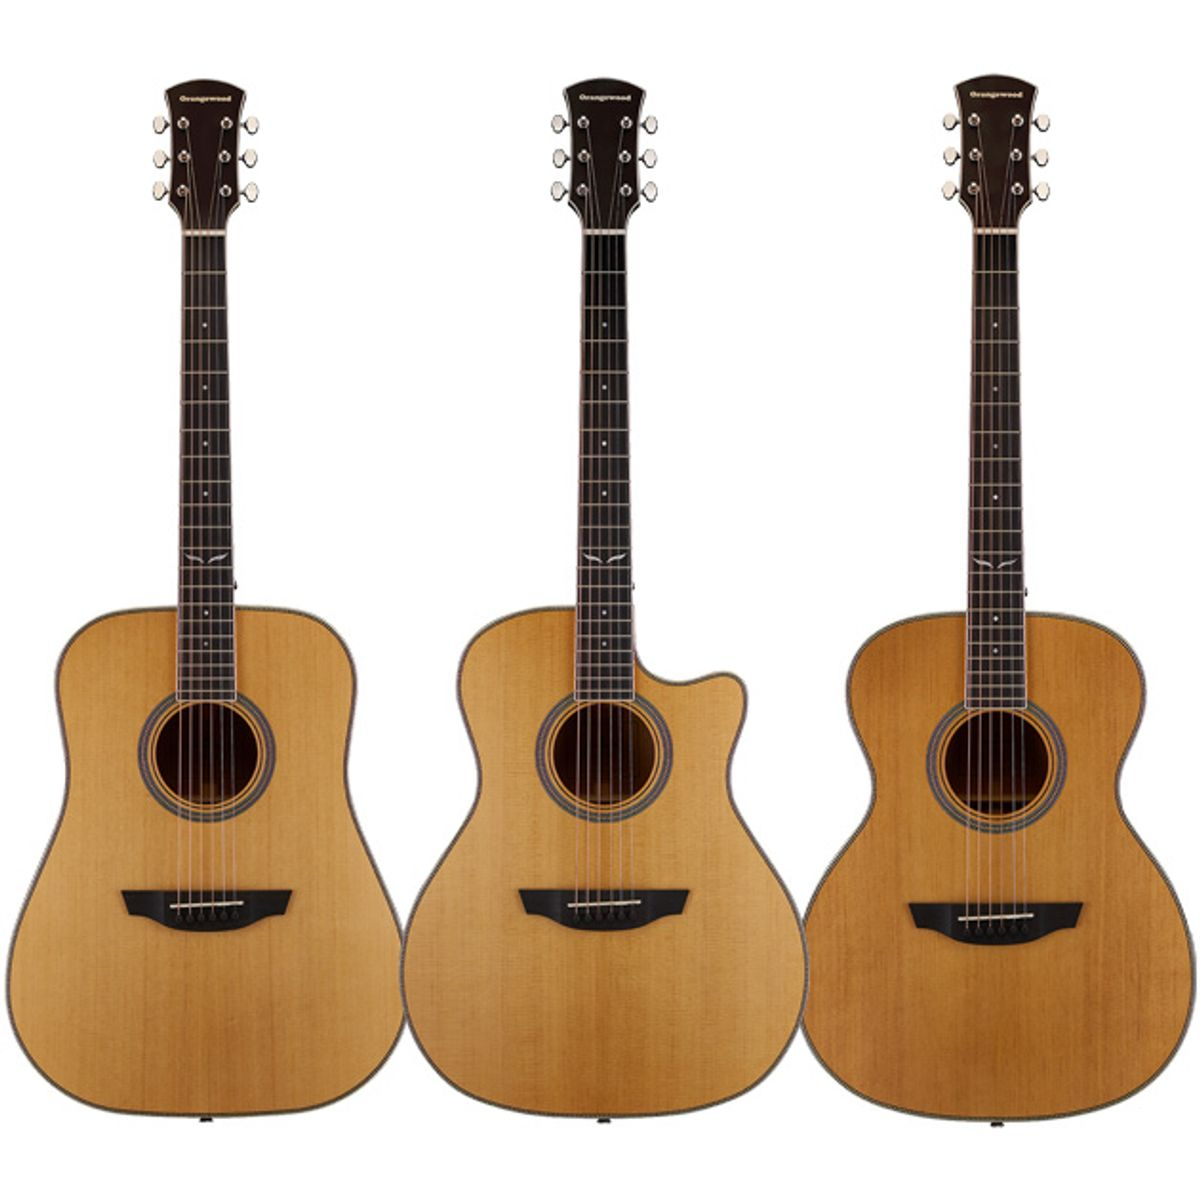 Orangewood Introduces First All-Solid Acoustic Guitars